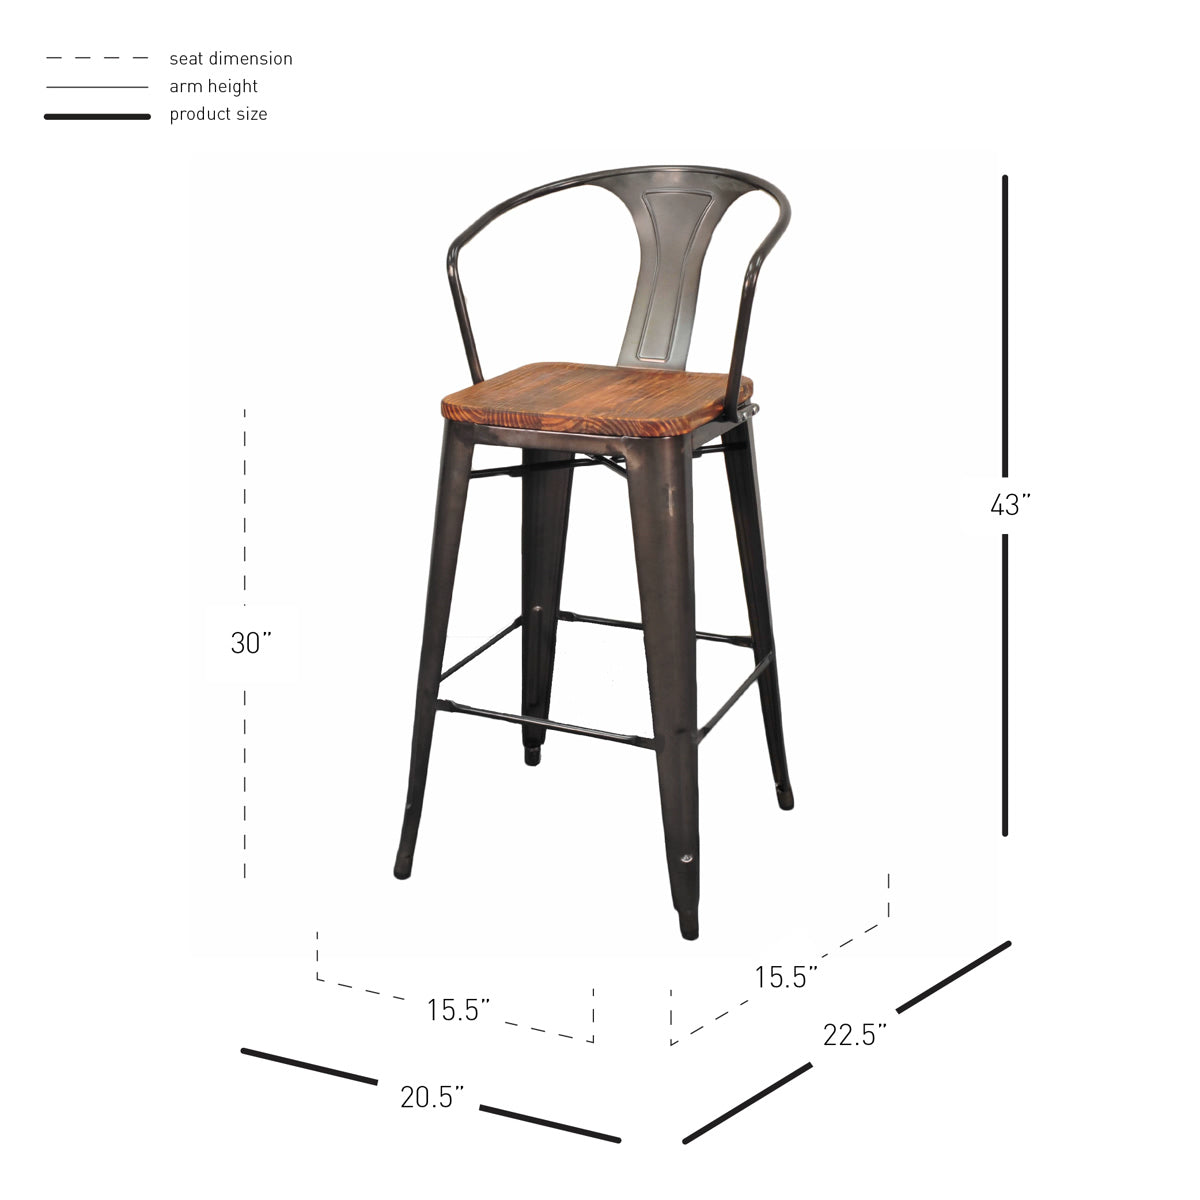 Incredible Metropolis Metal Bar Stool Set Of 4 By New Pacific Direct Caraccident5 Cool Chair Designs And Ideas Caraccident5Info